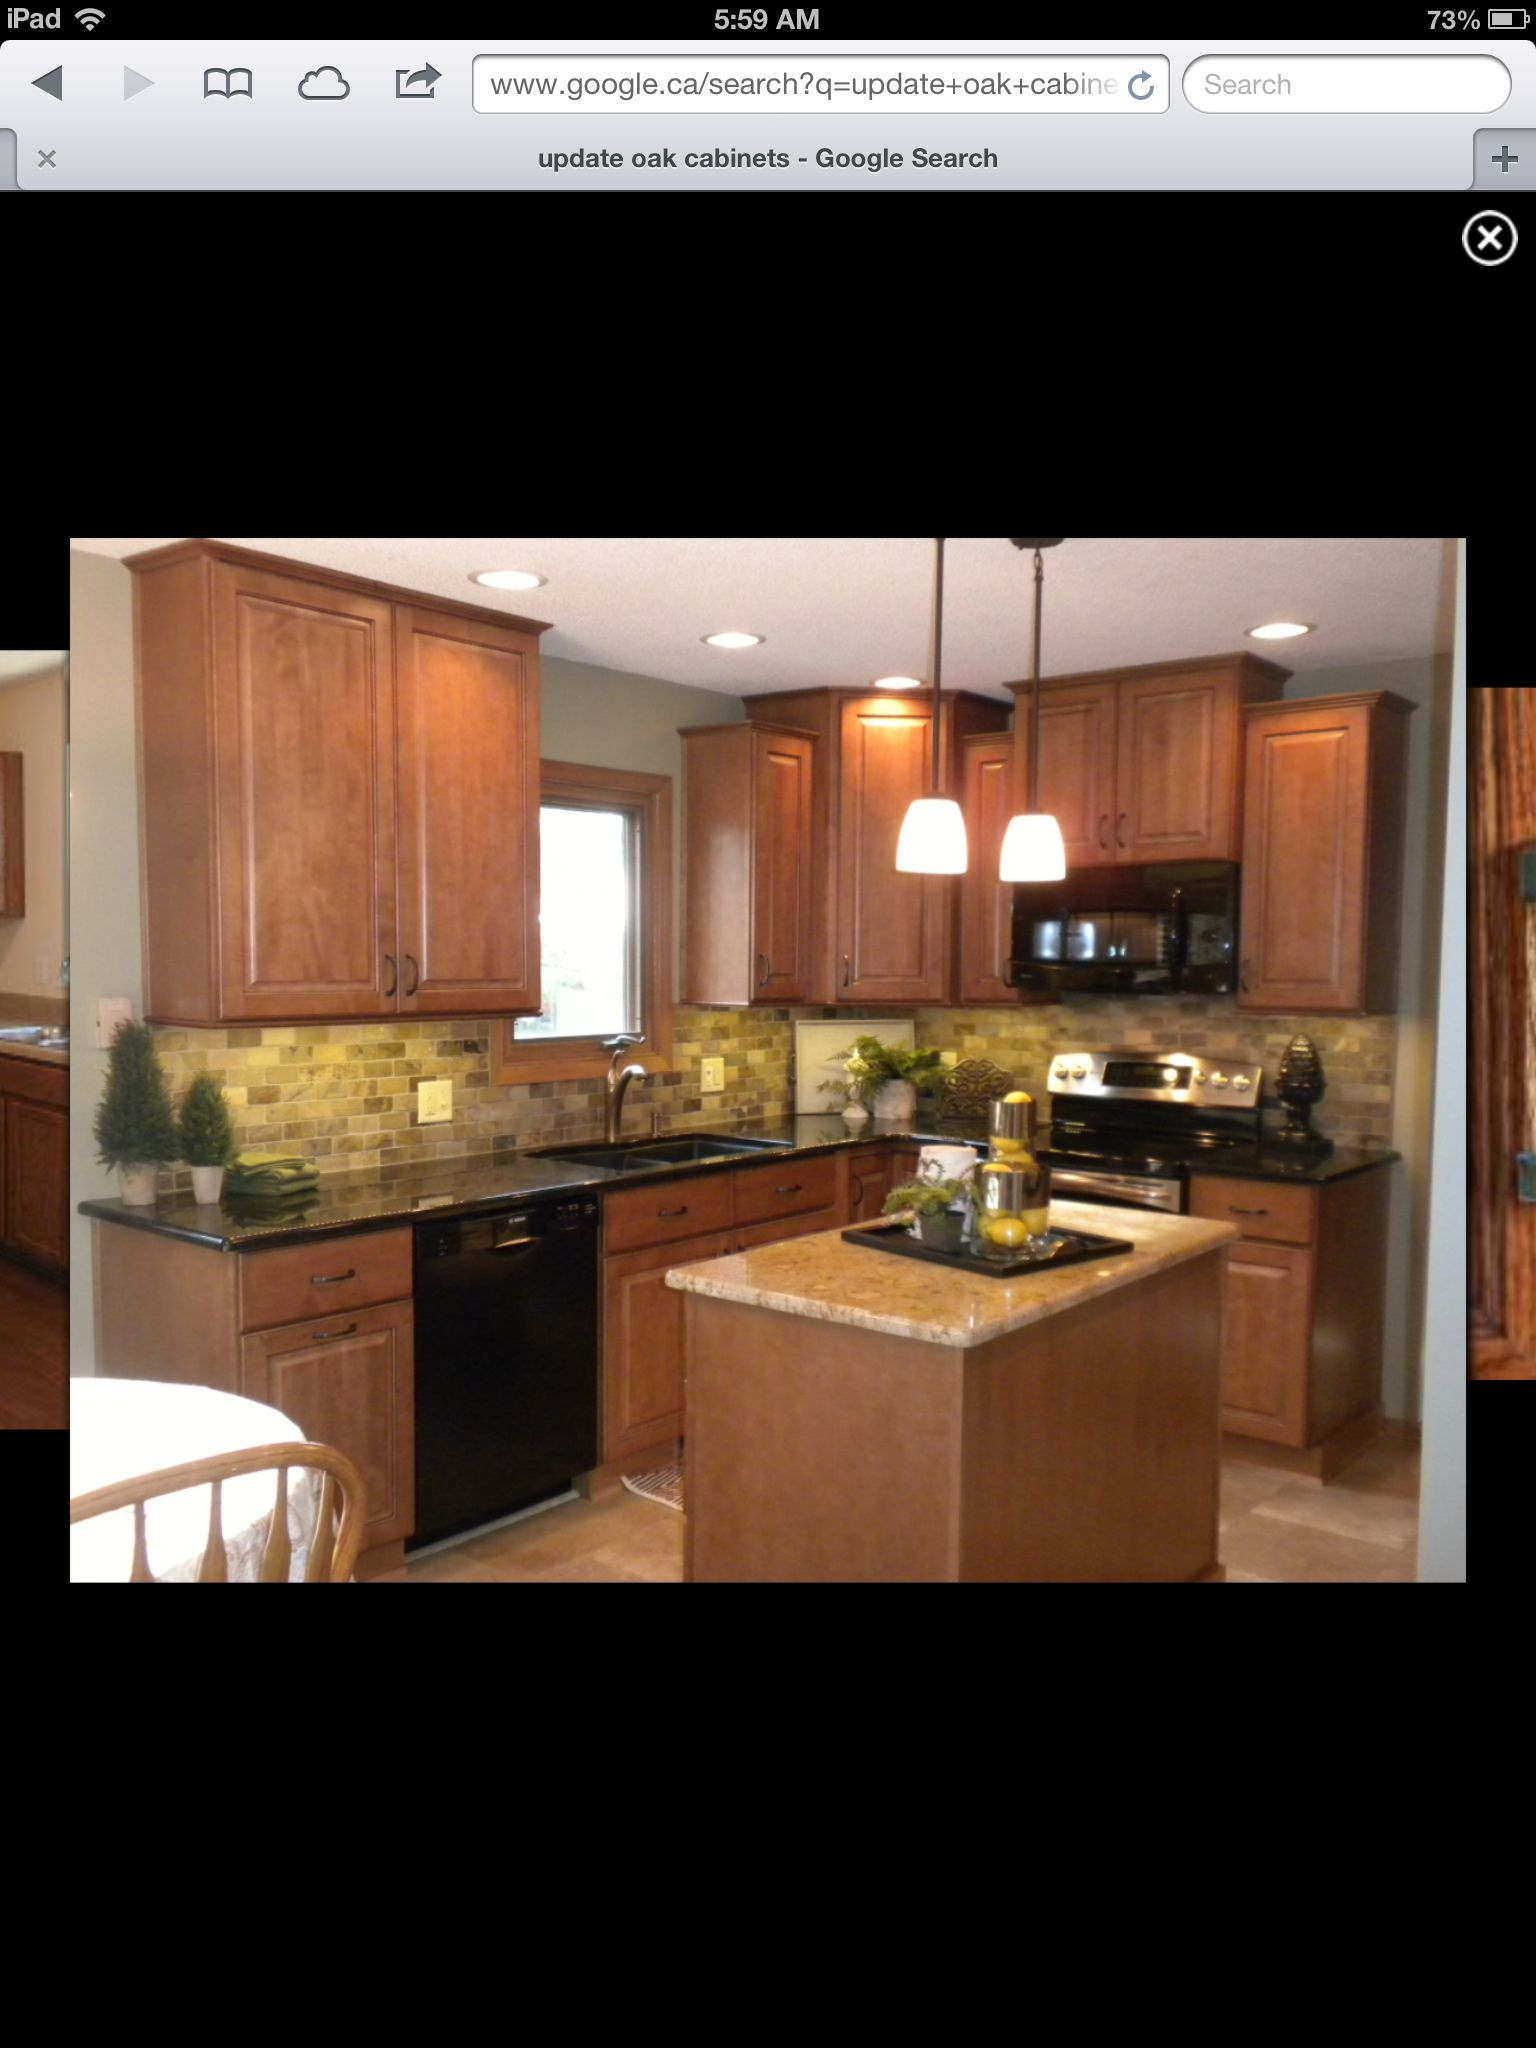 How To Update Laminate Kitchen Cabinets Update Light Oak Cabinets Decorating Pinterest Light